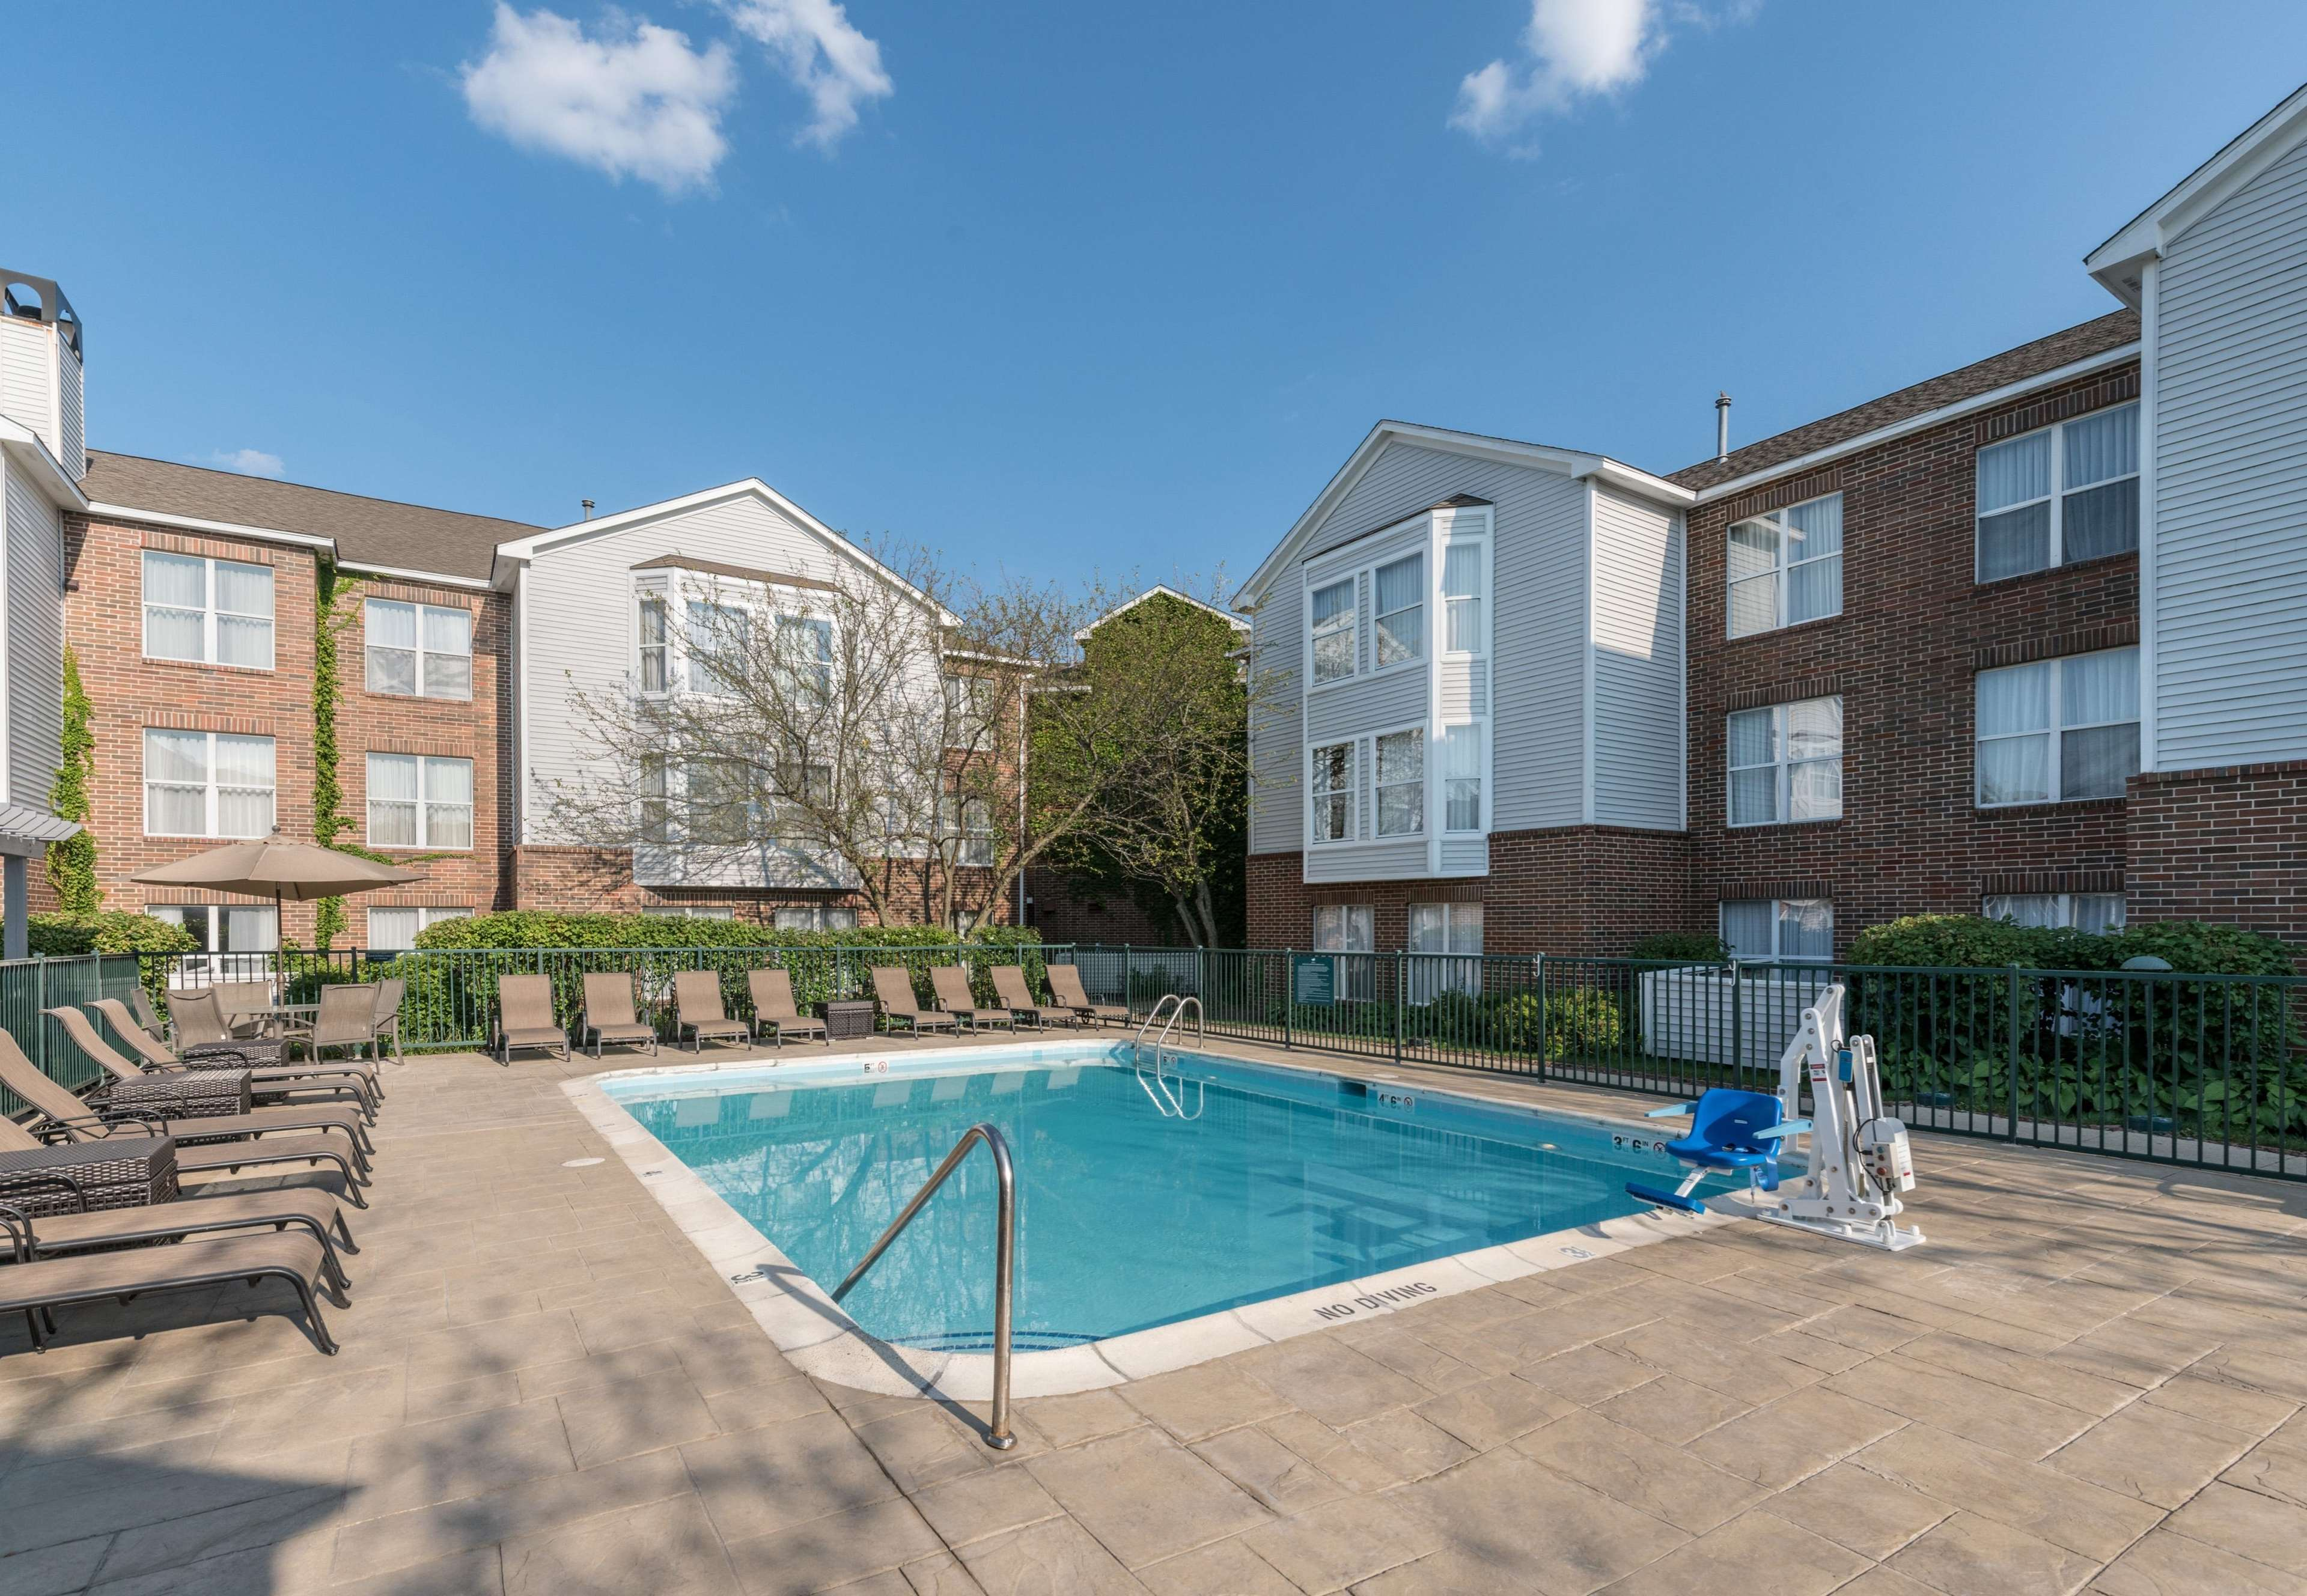 Homewood Suites by Hilton Chicago - Schaumburg 815 East American ...